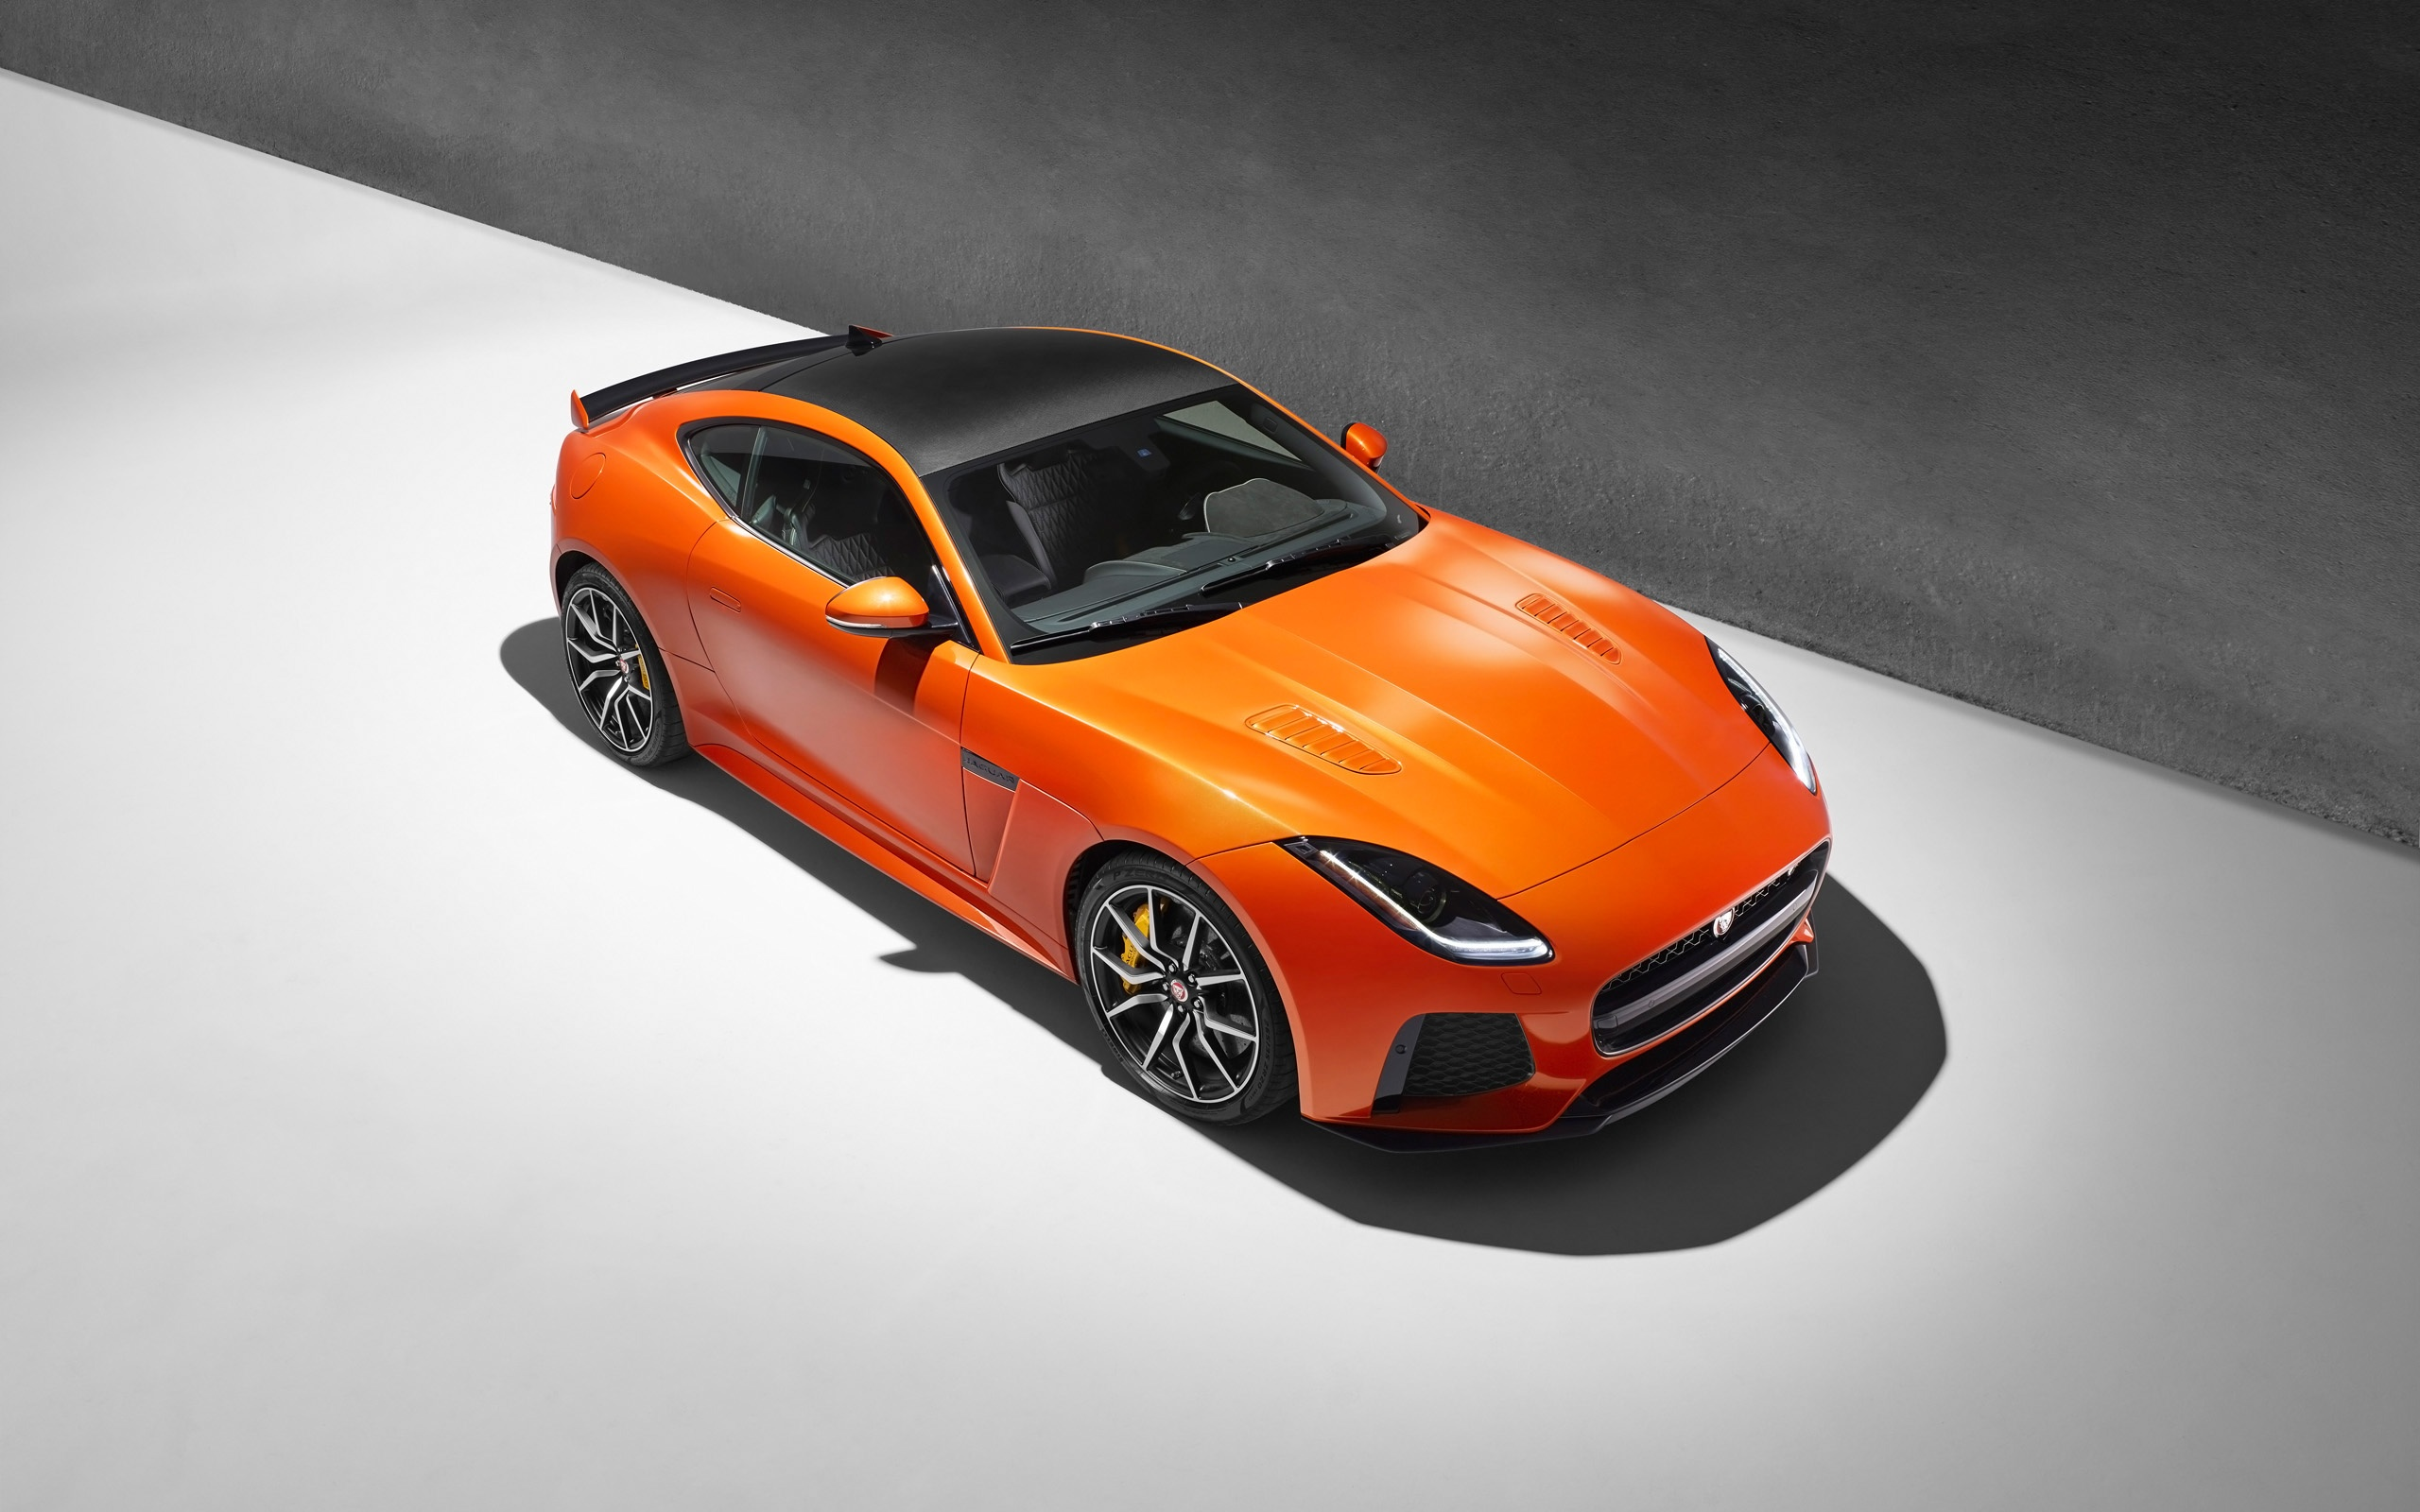 2017 Jaguar F Type Svr Coupe Wallpapers In Jpg Format For Free Download